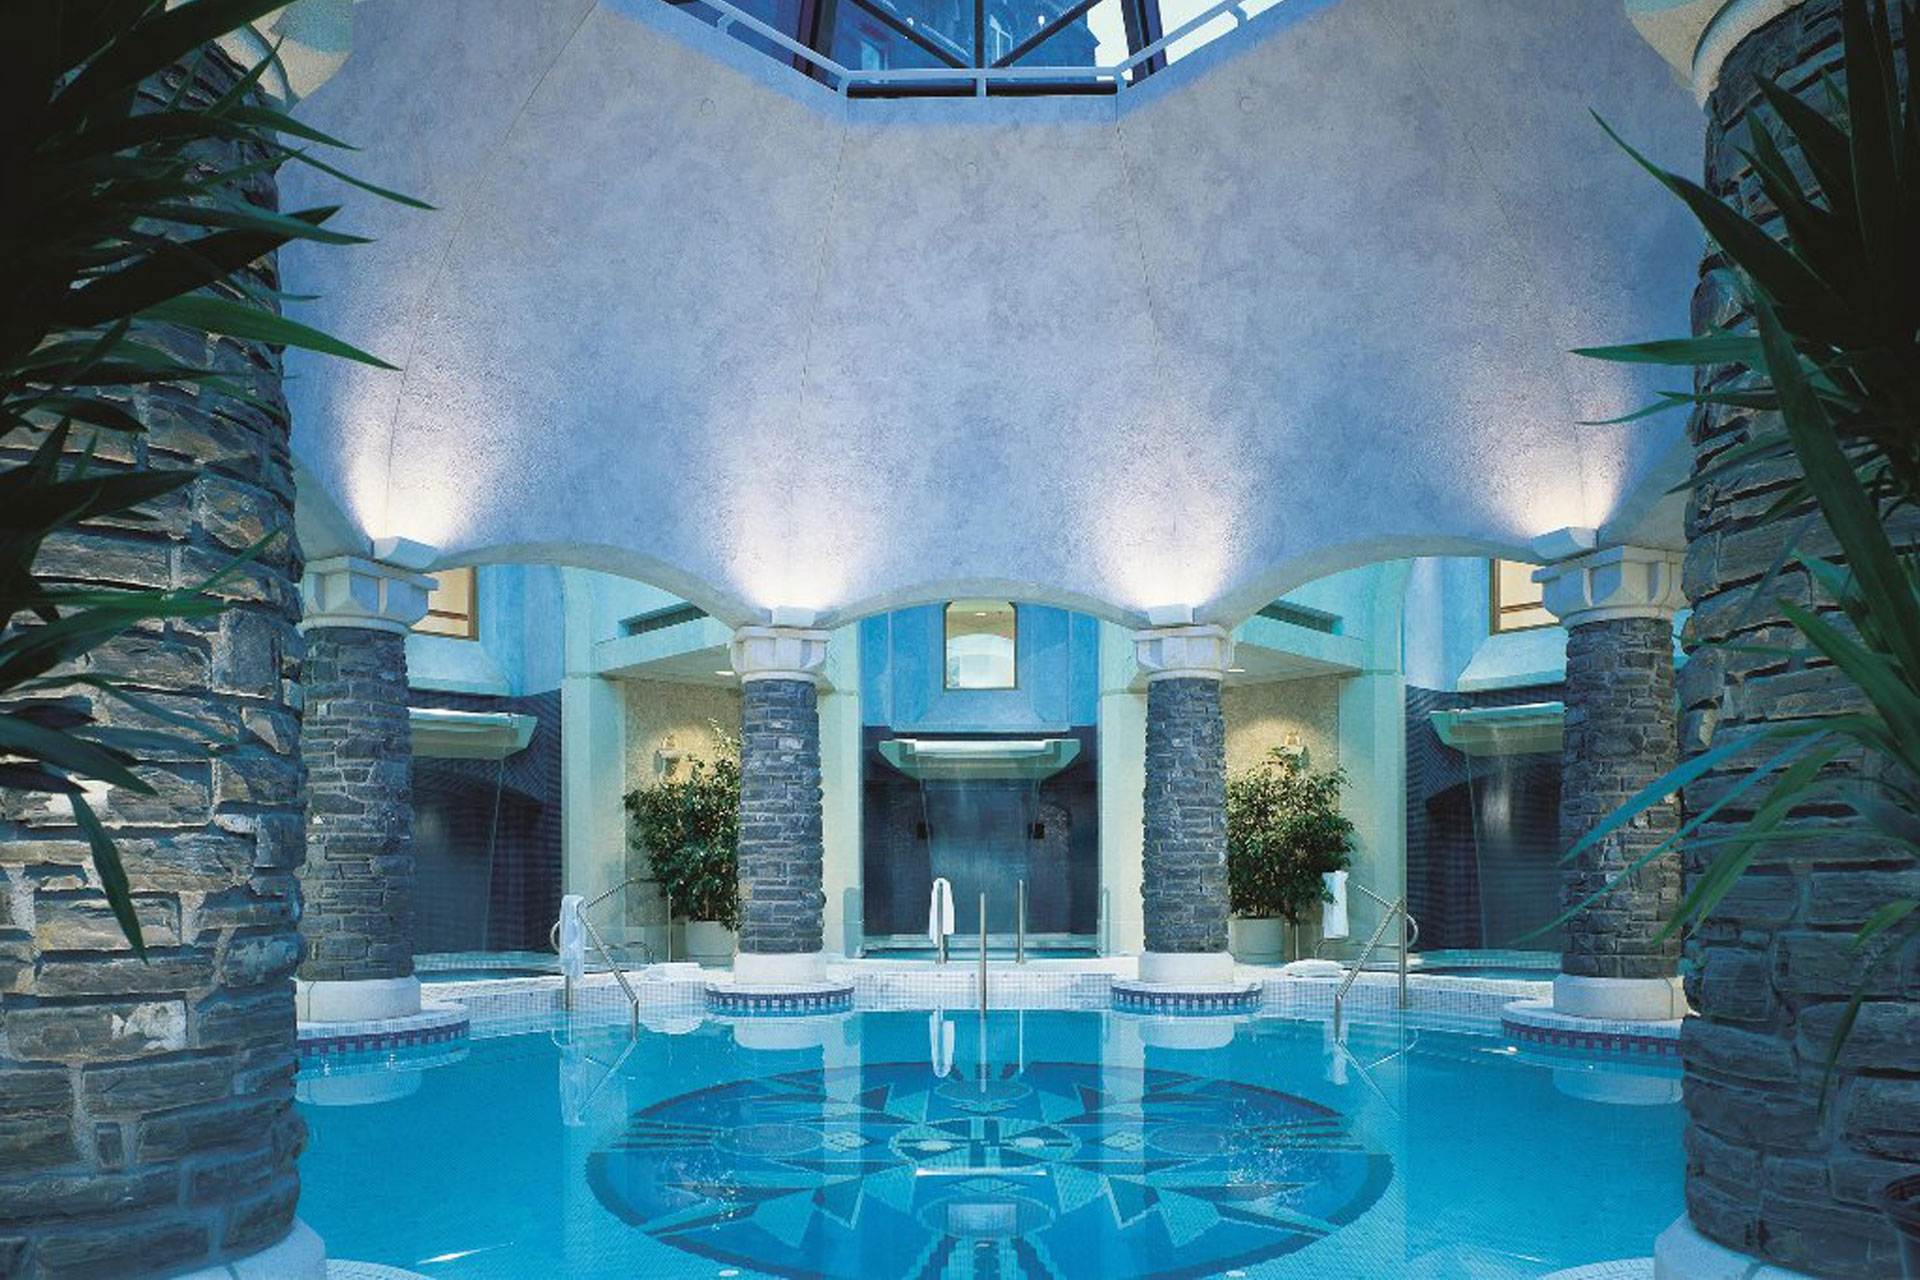 Spa at Fairmont Banff Springs; Courtesy of Fairmont Banff Springs